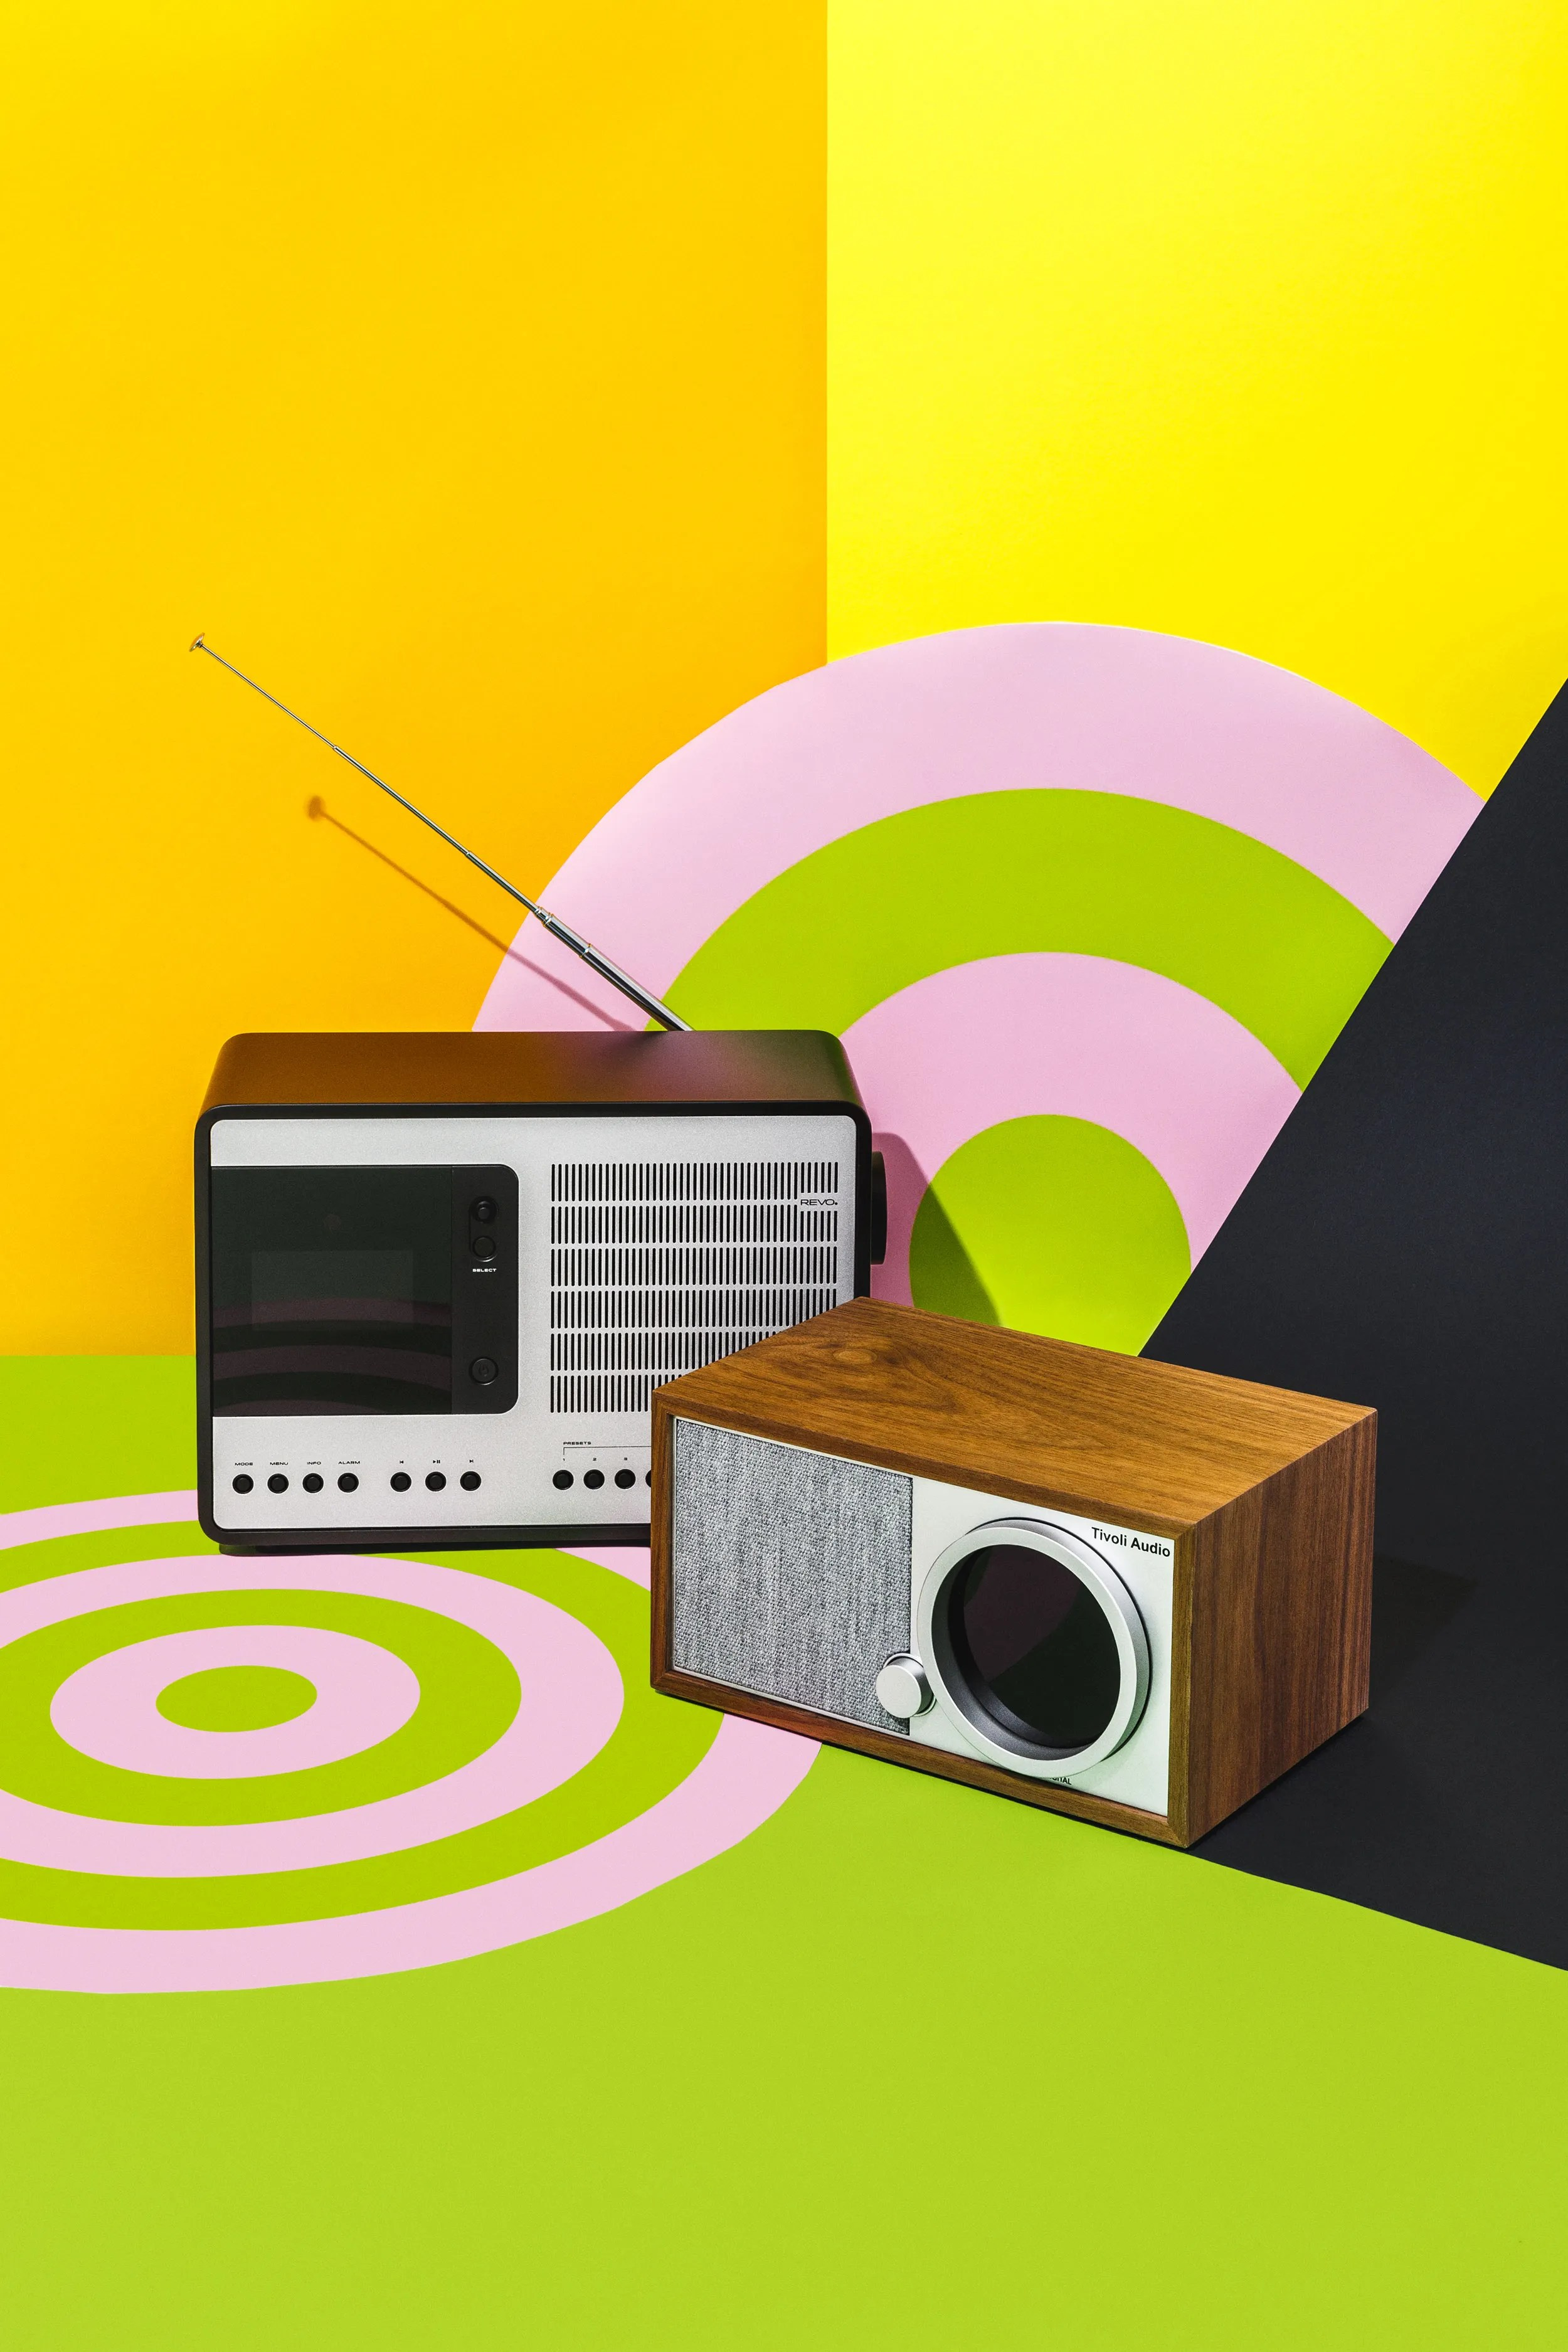 Tivoli Audio Yellow Stream Your Favorite Tunes With These Connected Radios Revo